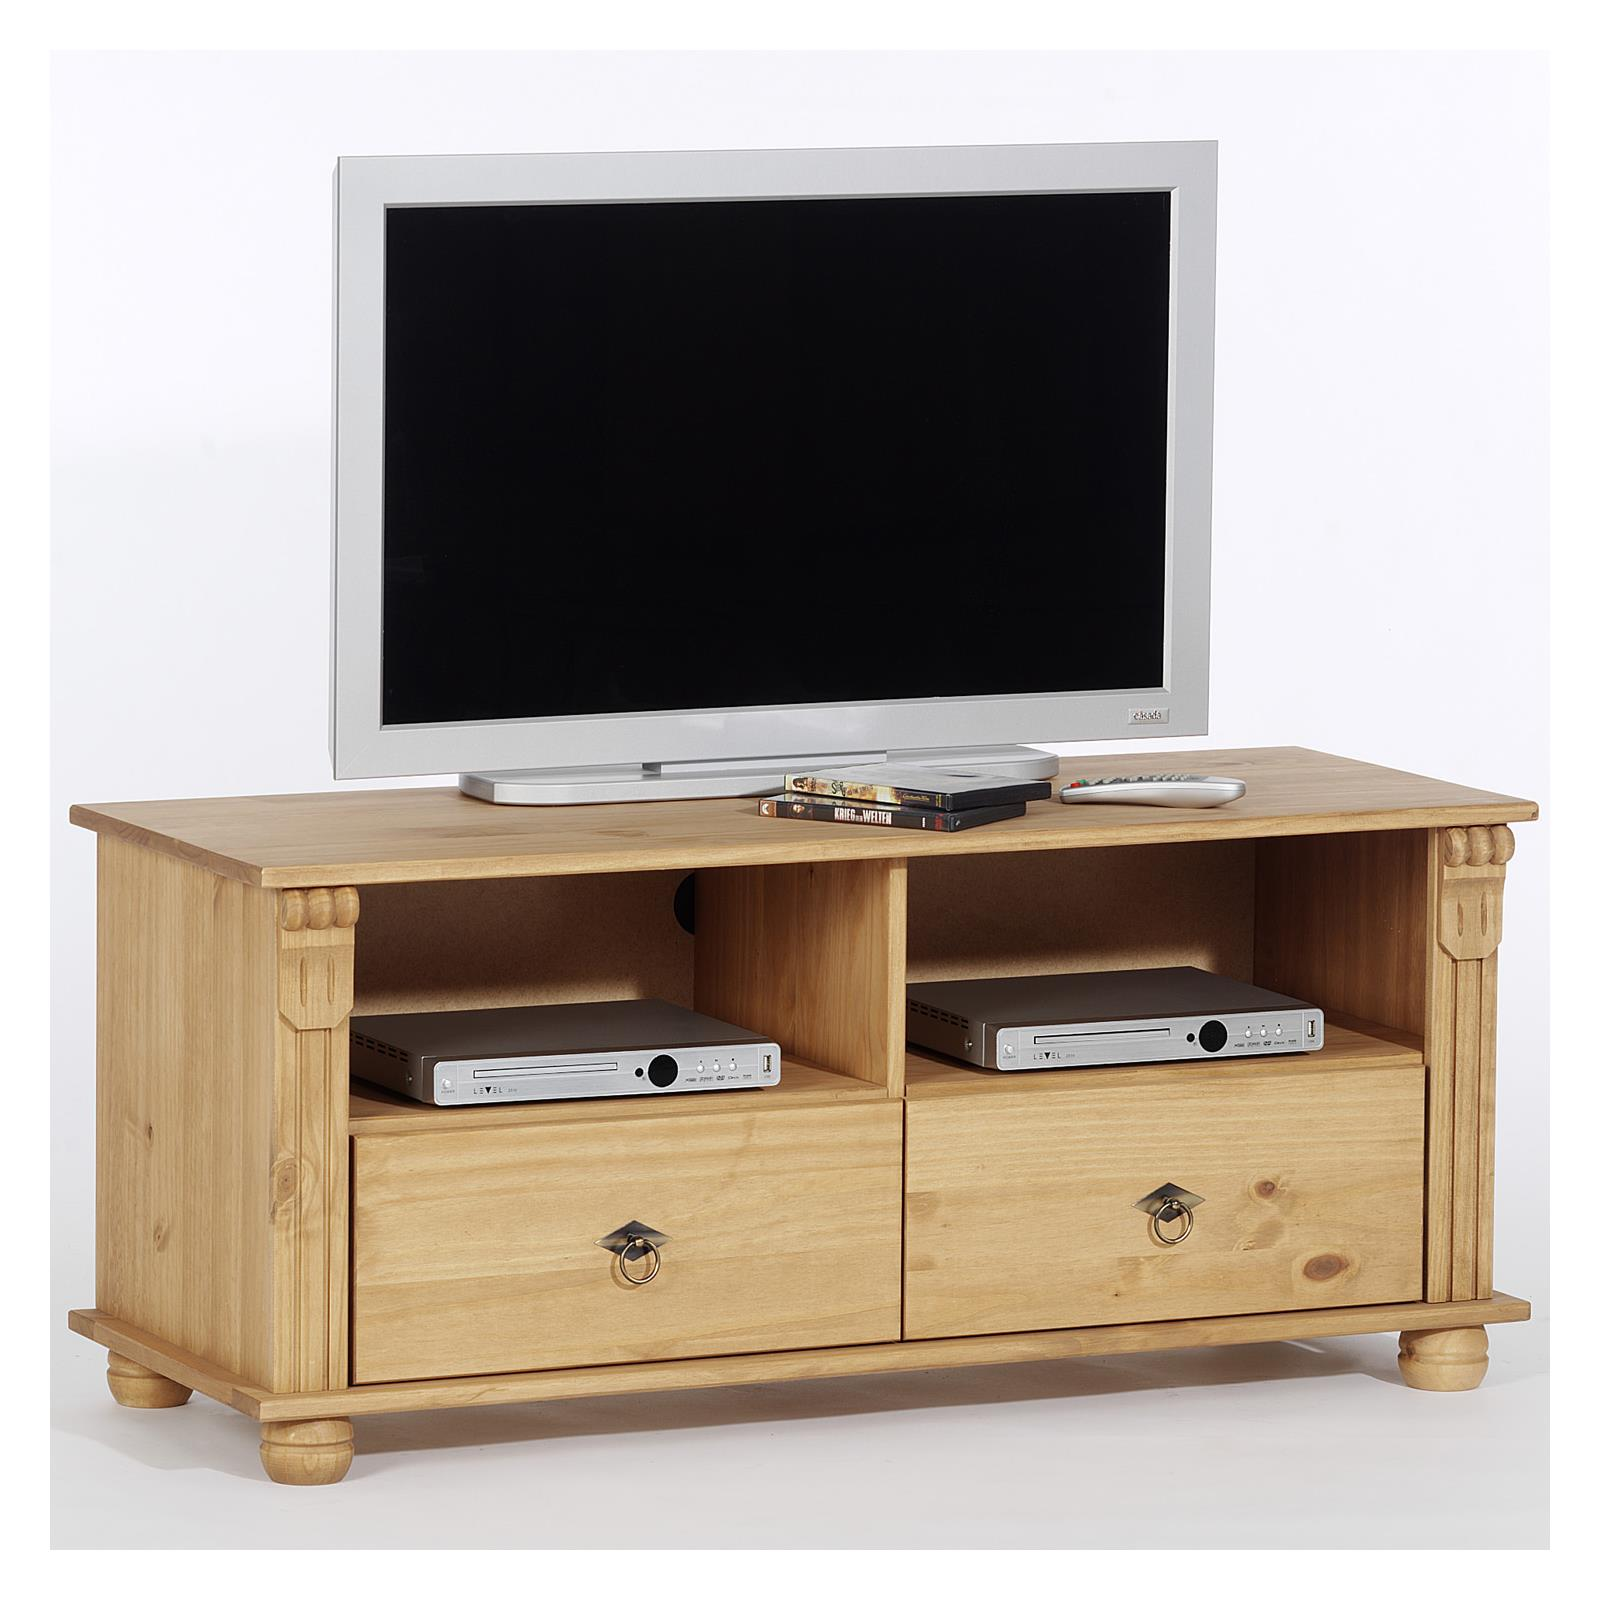 lowboard tv m bel phonom bel tv rack medienm bel hifi tisch phonotisch kiefer ebay. Black Bedroom Furniture Sets. Home Design Ideas